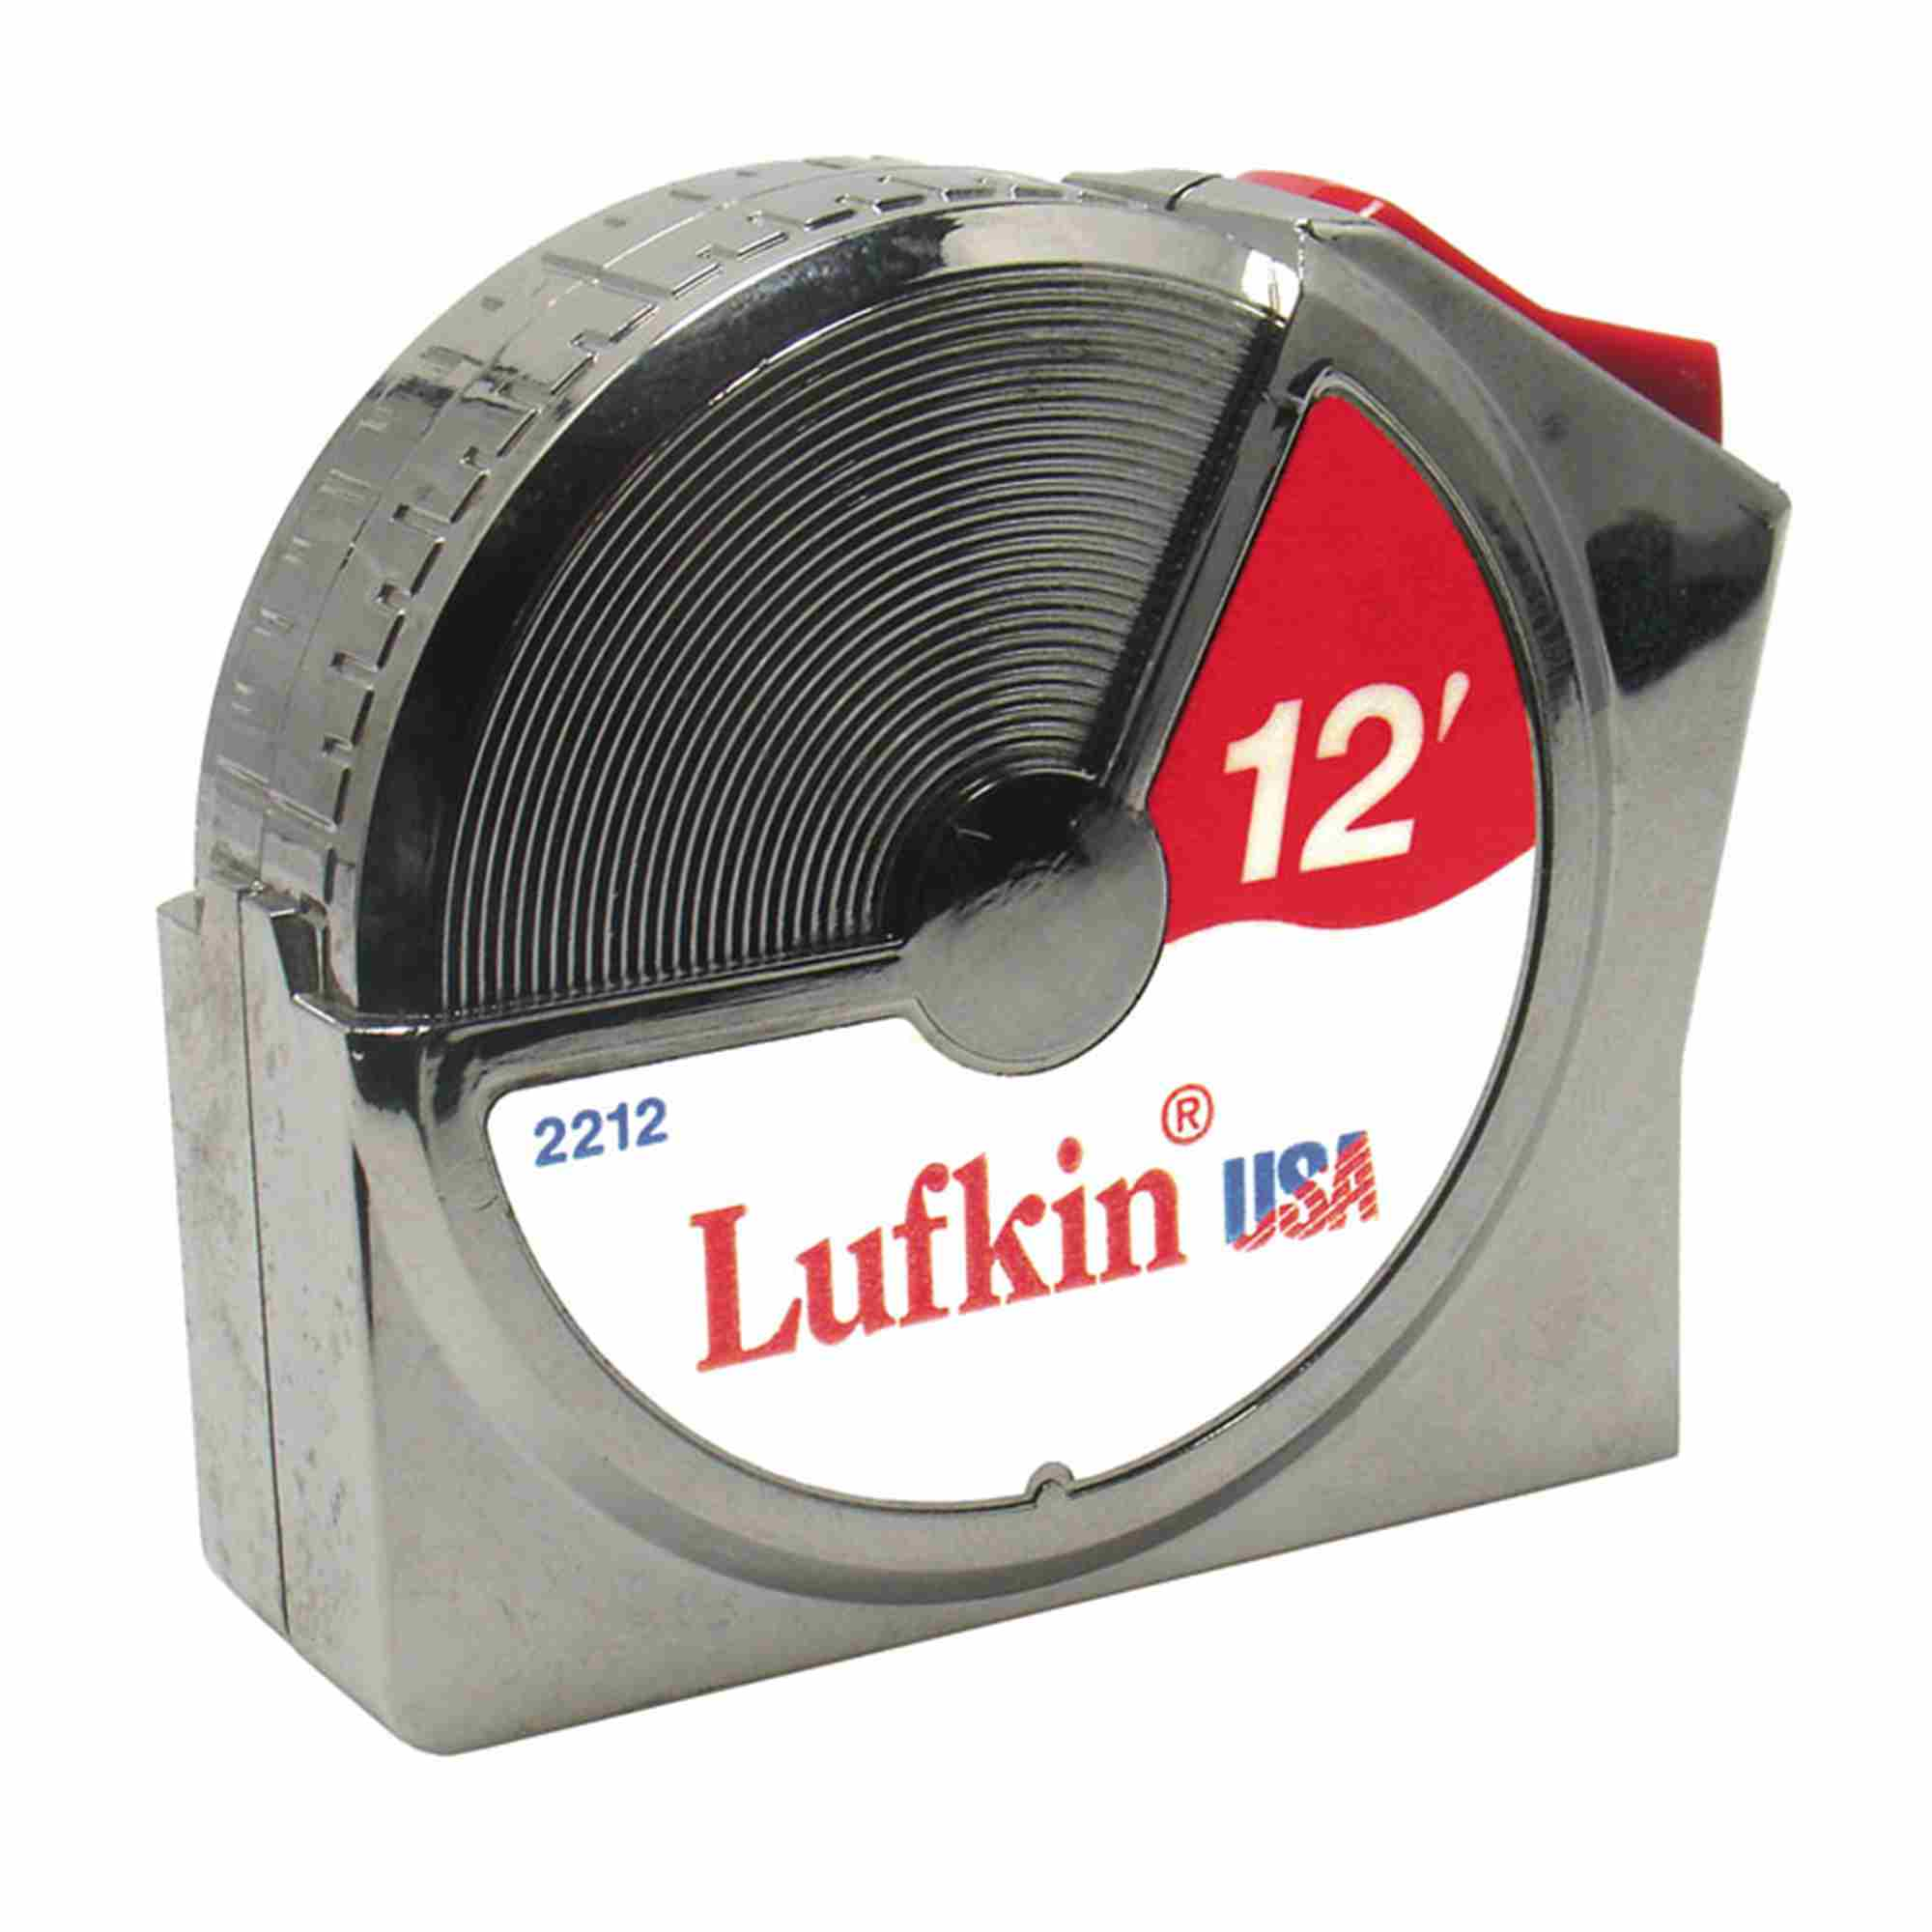 2212 Lufkin Tool  Tape Measure